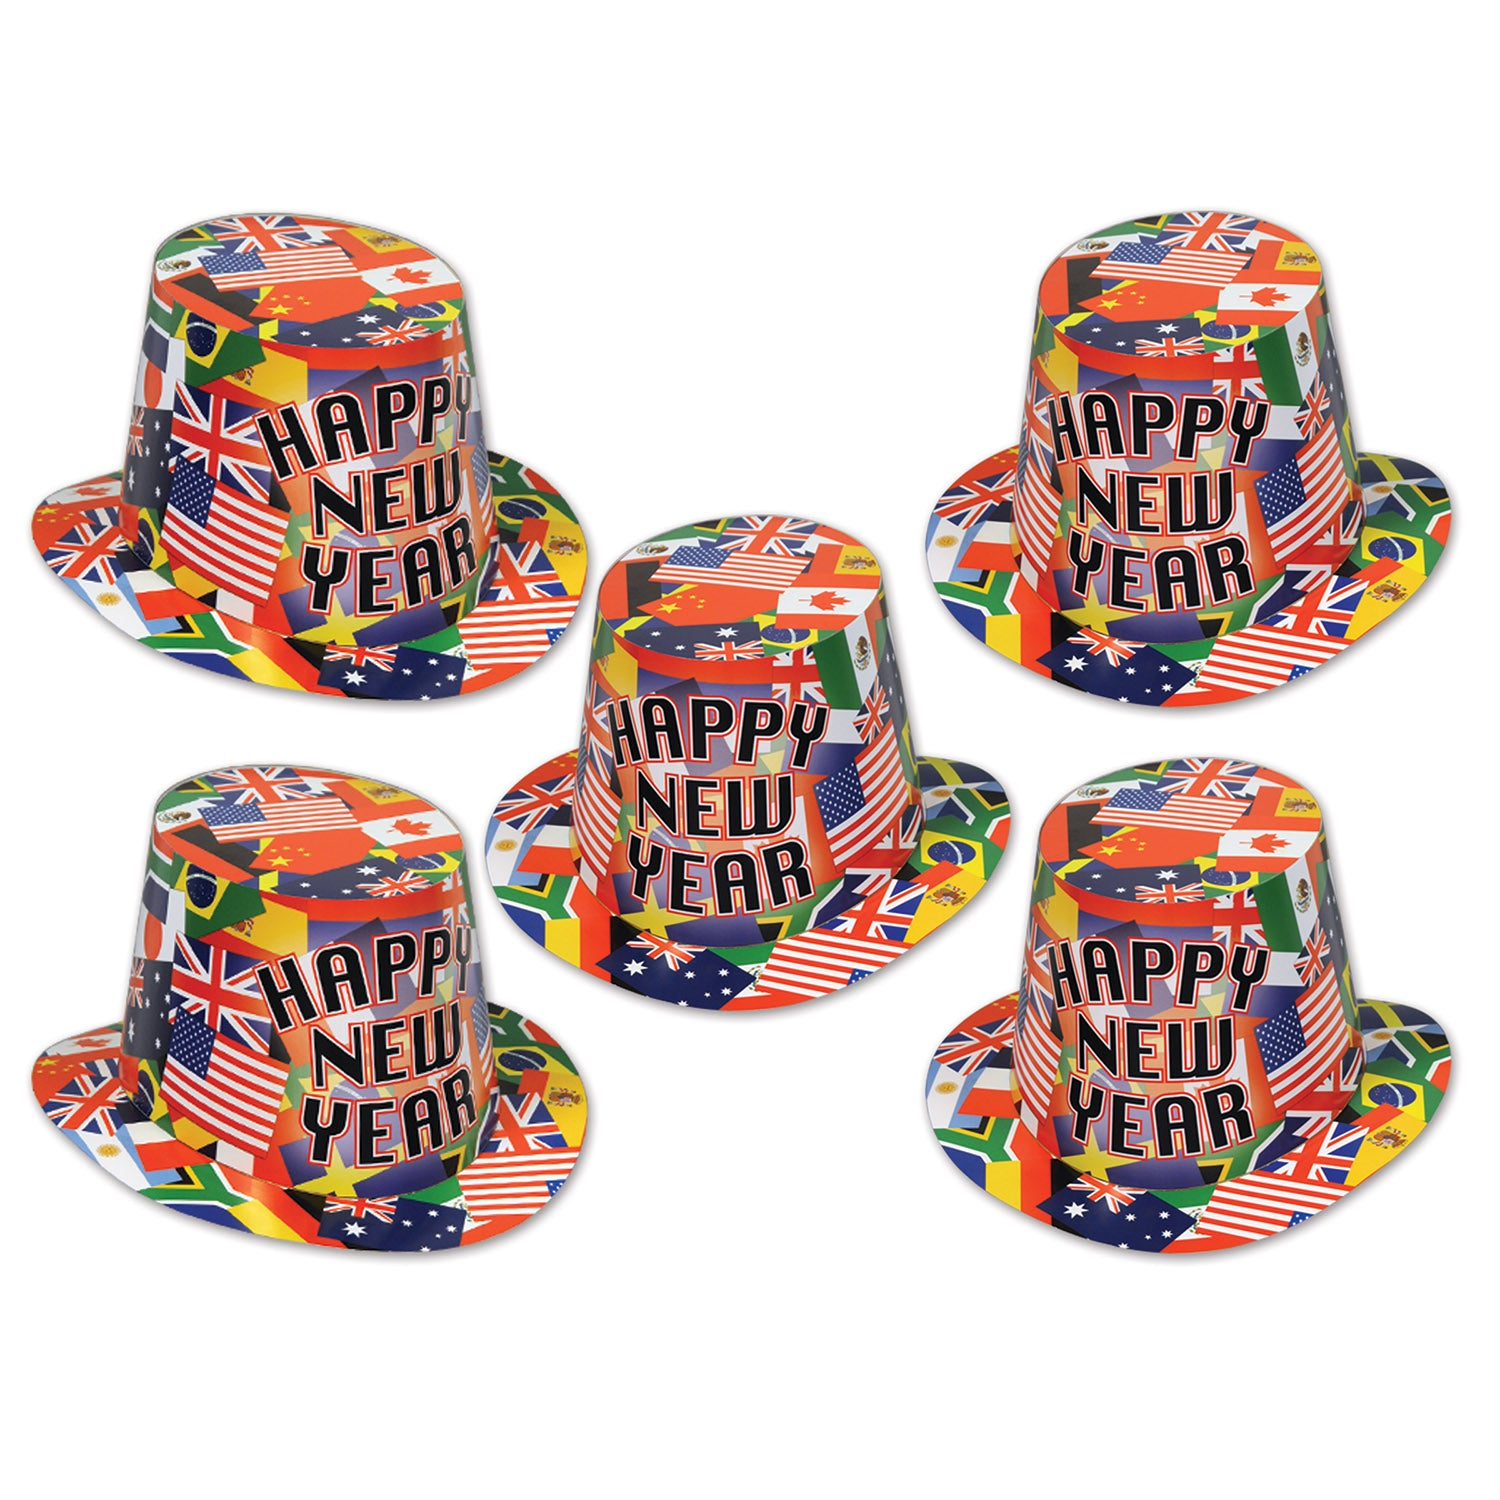 7ec4064a34e 25 Case) Beistle International New Years Party Hi-Hat - Bulk Party ...